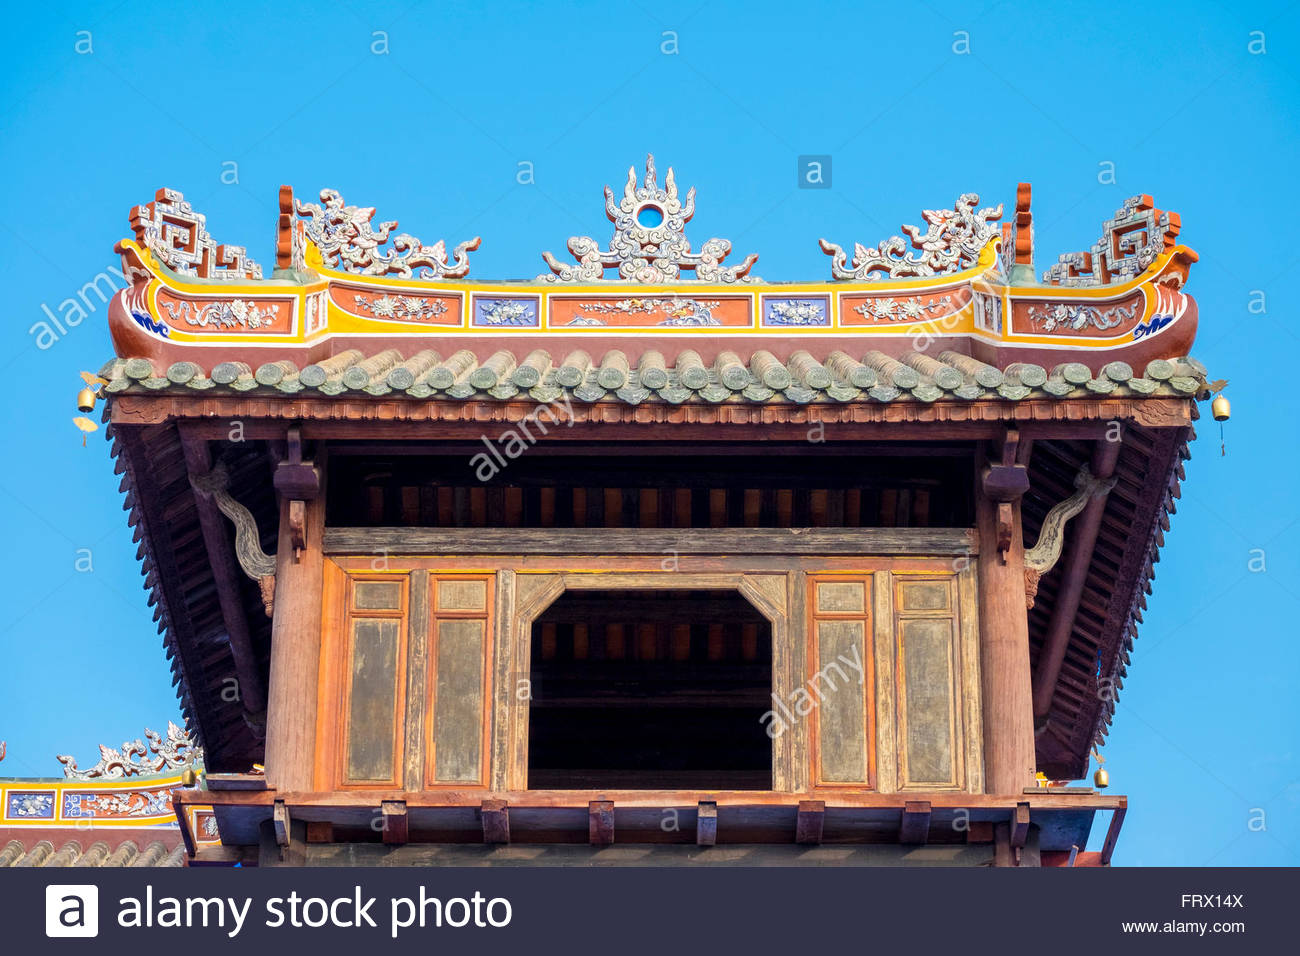 Detail of Noon Gate (Ngo Mon), the main gate to the Imperial City of Hue, Thua Thien-Hue Province, Vietnam - Stock Image